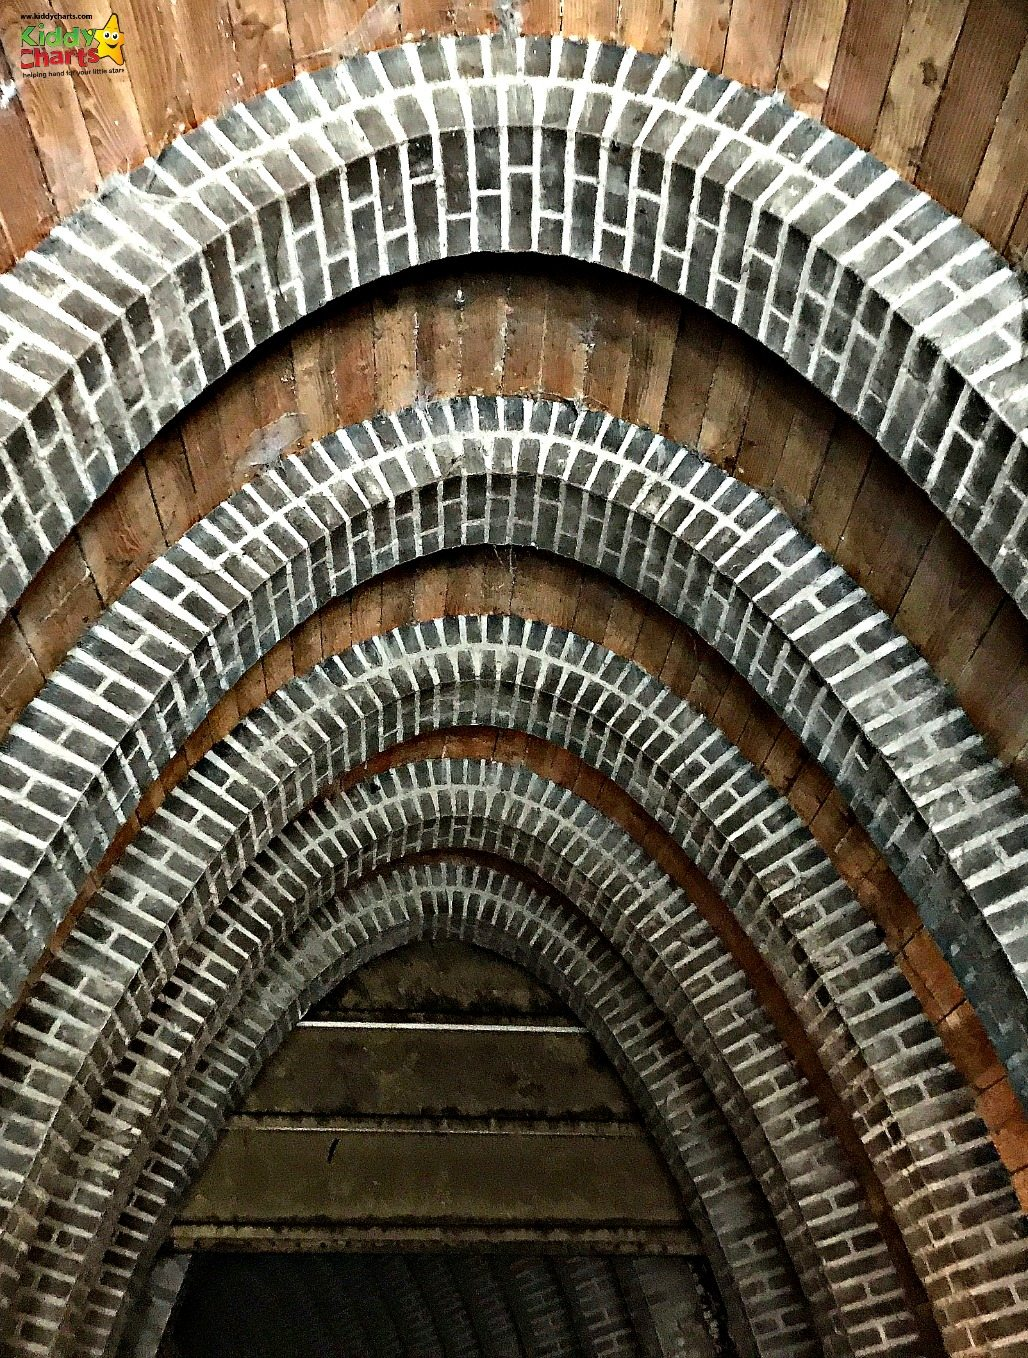 Some of the tunnels on the waterways in Hertogenbosch are simply stunning...just love this roof...